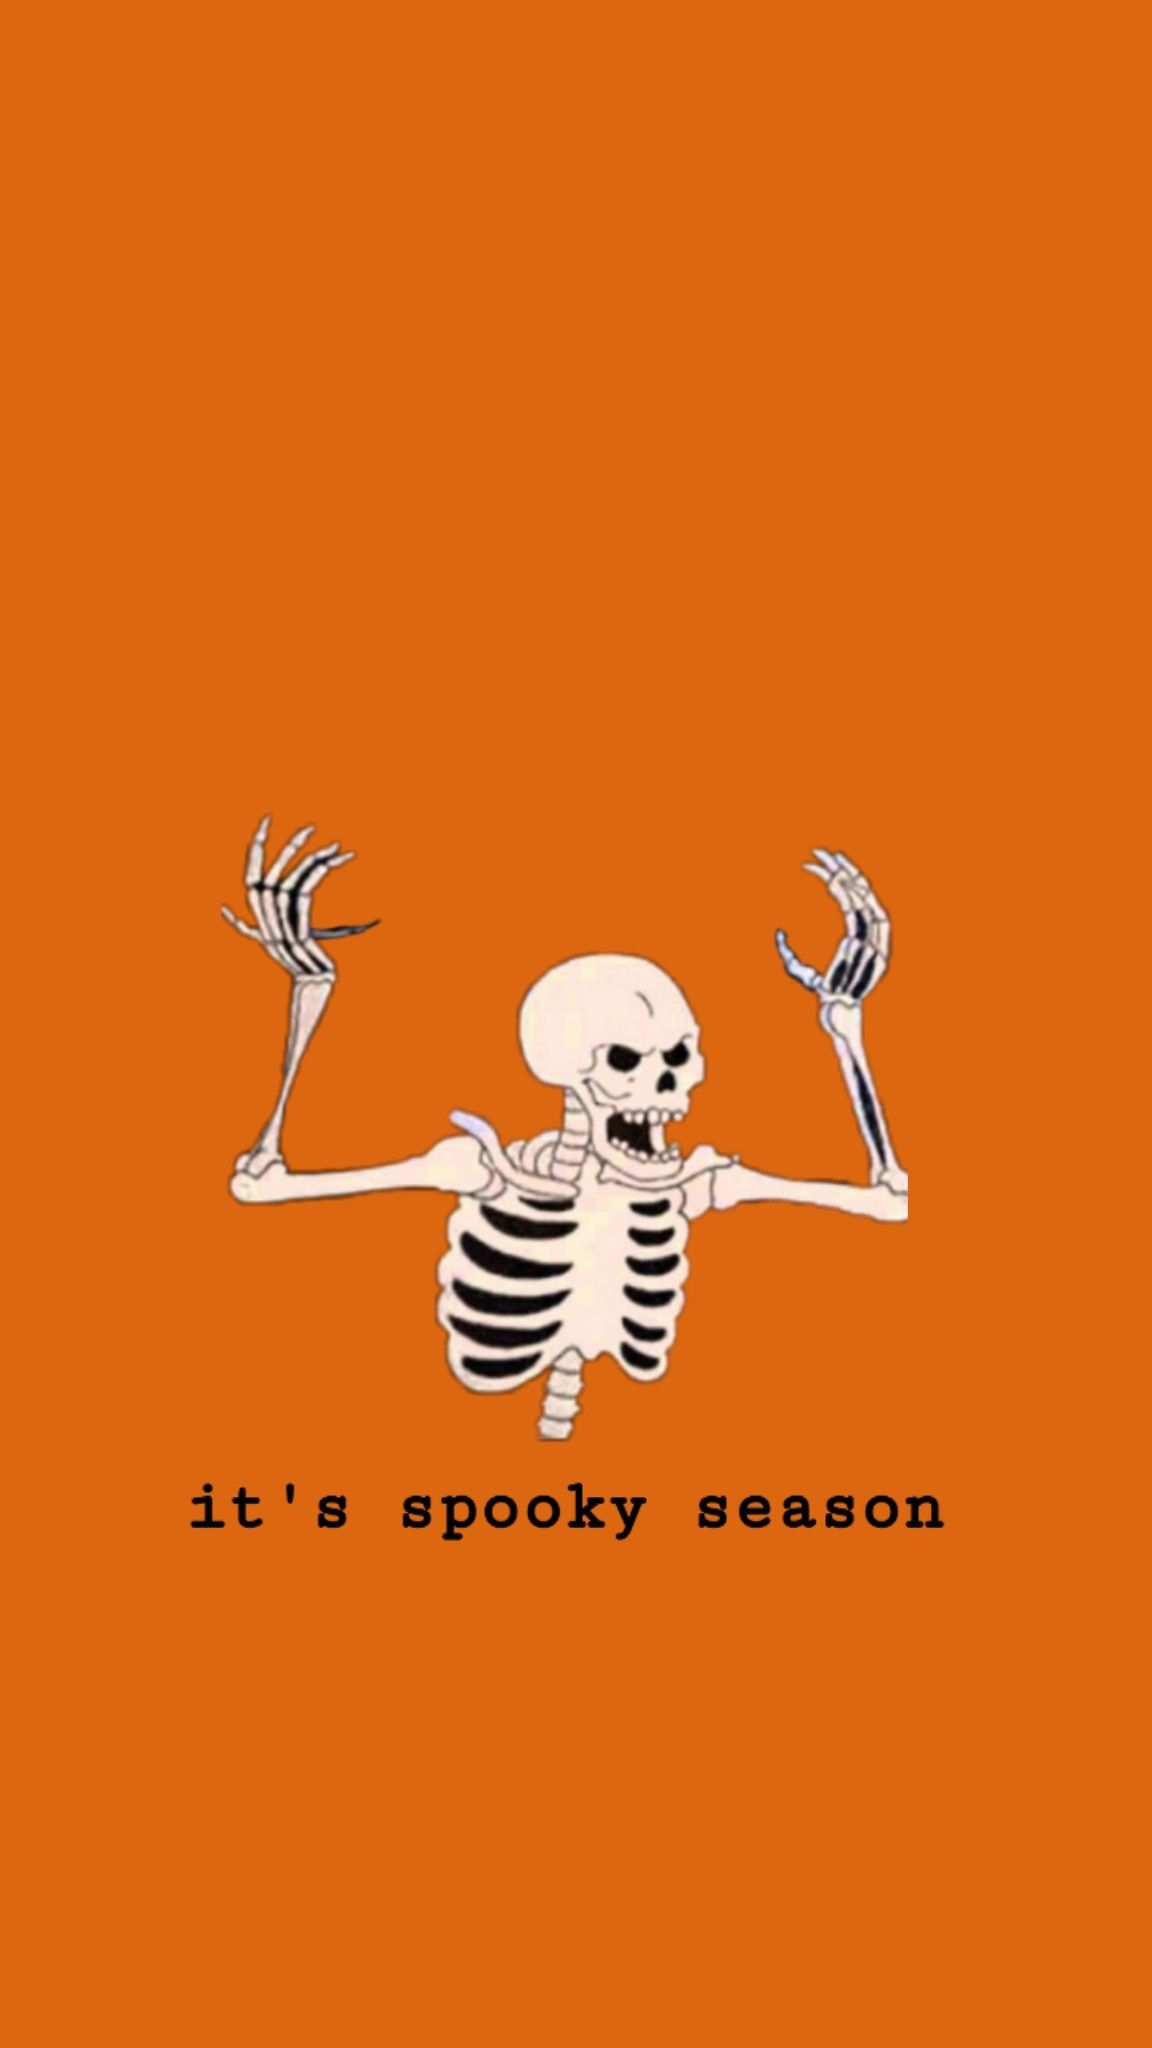 It S Spooky Season Halloween Wallpaper Wallpaper Iphone Wallpaper